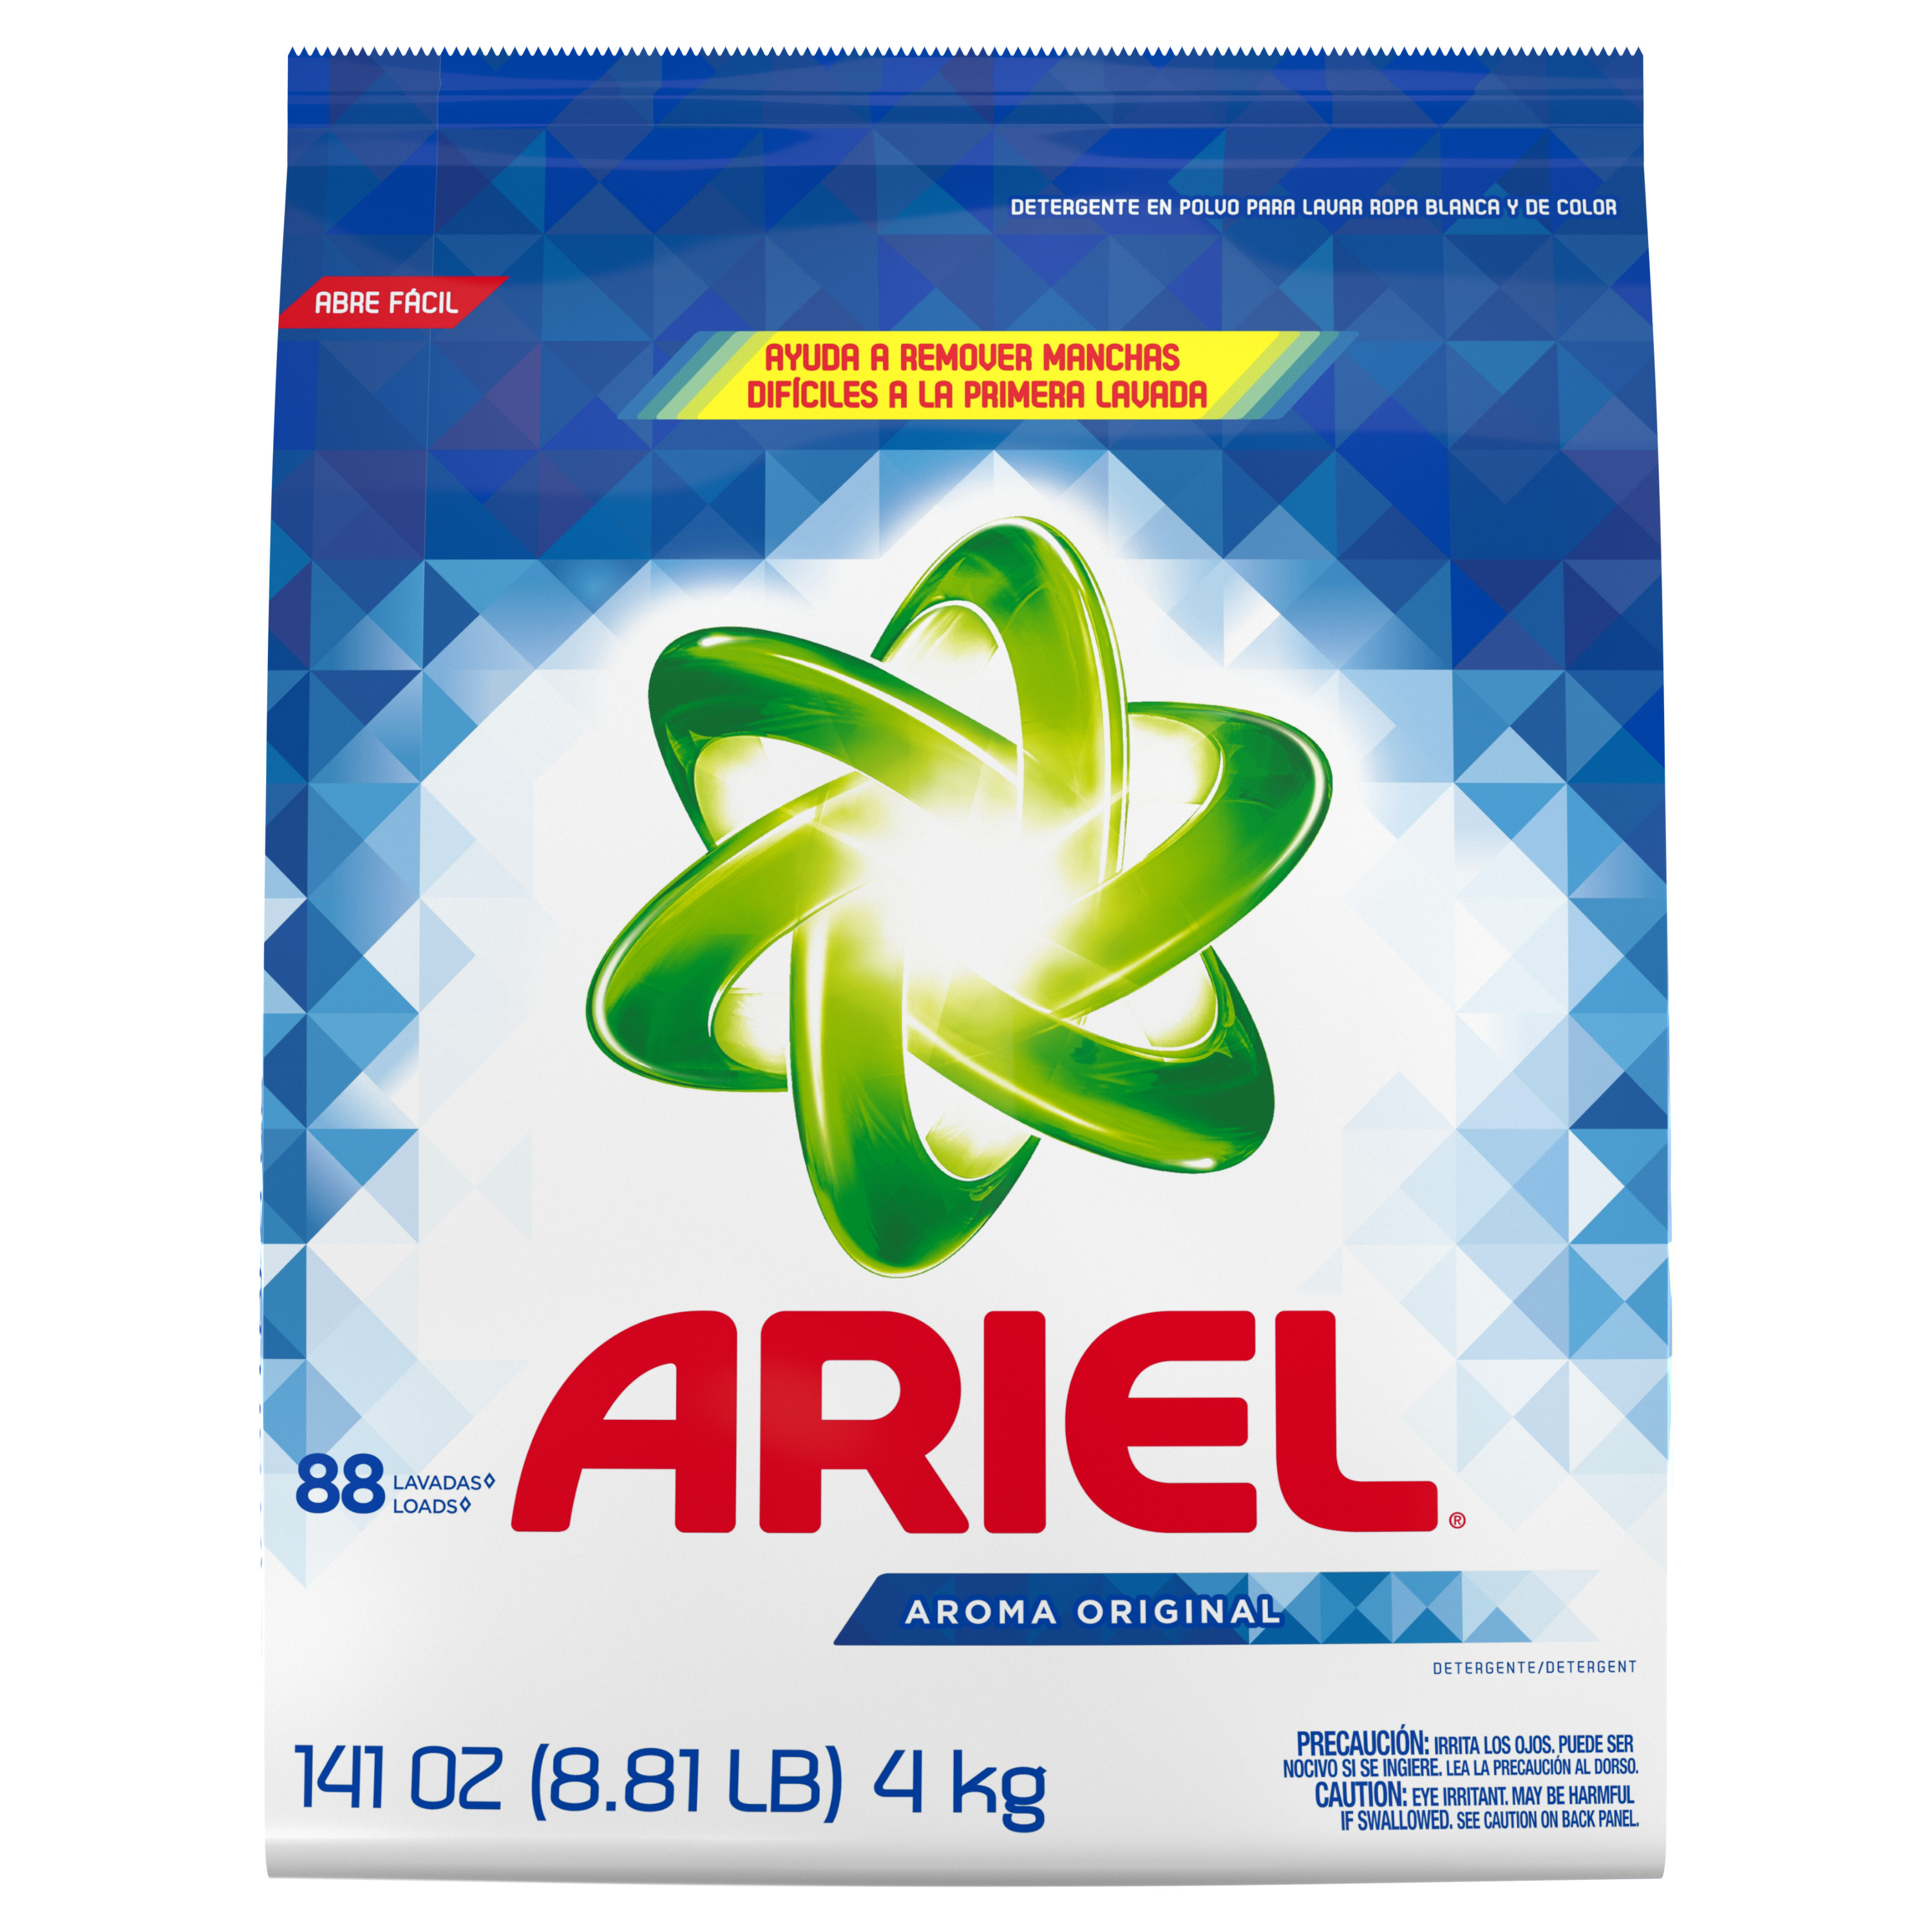 Ariel Laundry Detergent Powder, Original, 88 Loads 141 oz oz